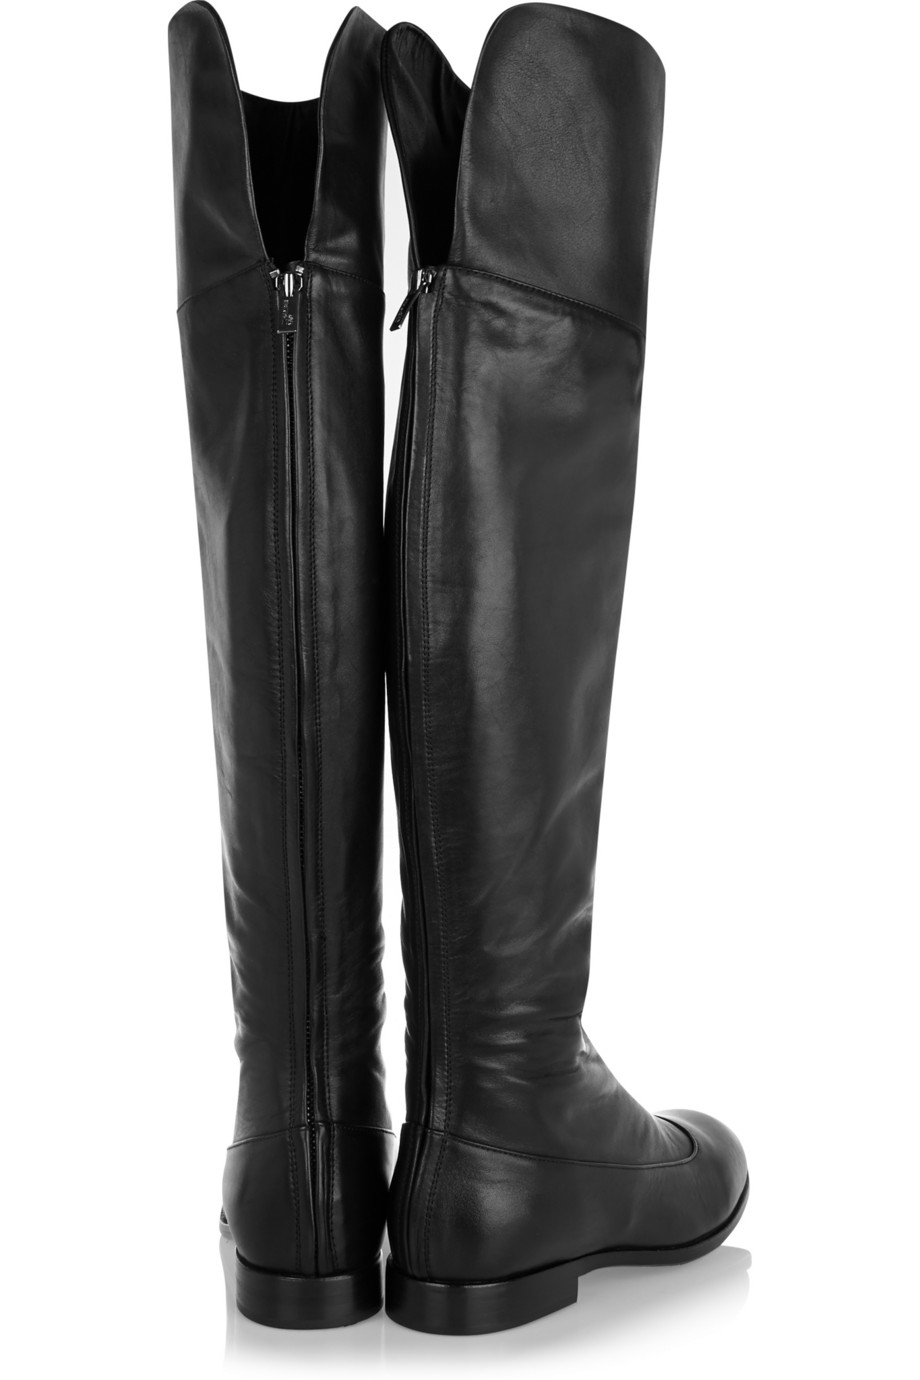 Over The Knee Black Leather Boots OO5uBgKA